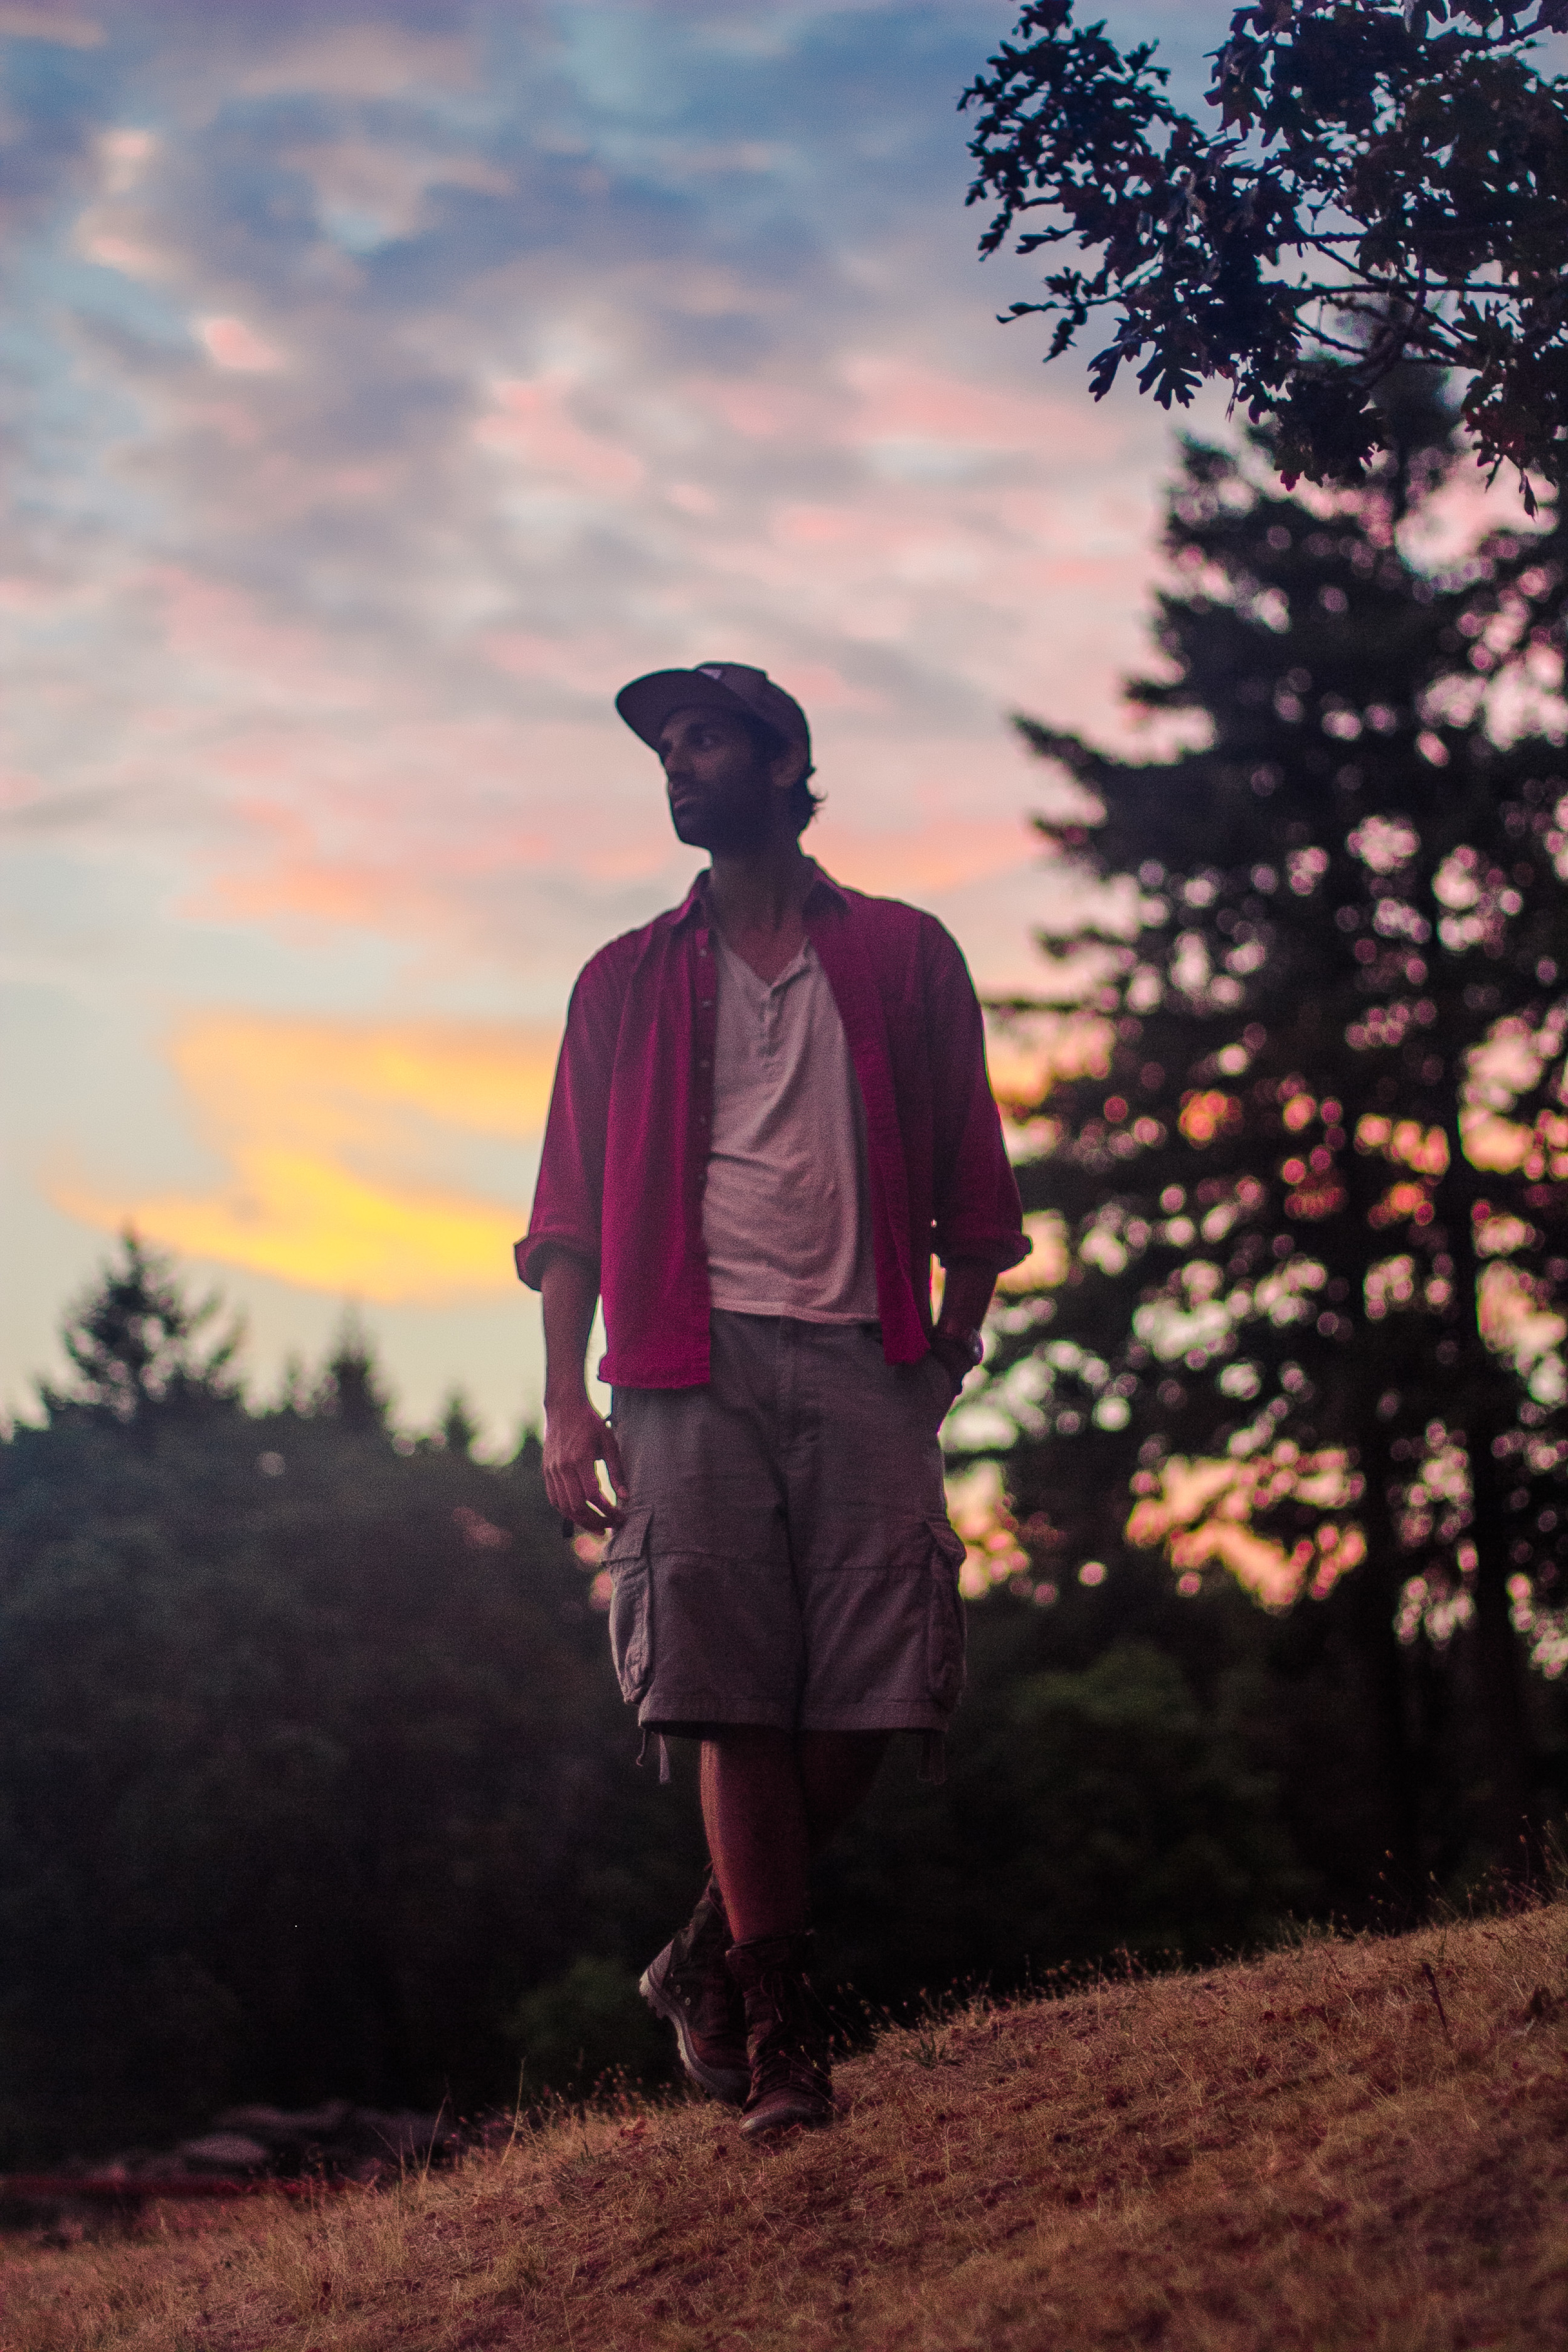 NewCastle Island, Vancouver, BC, August 2014